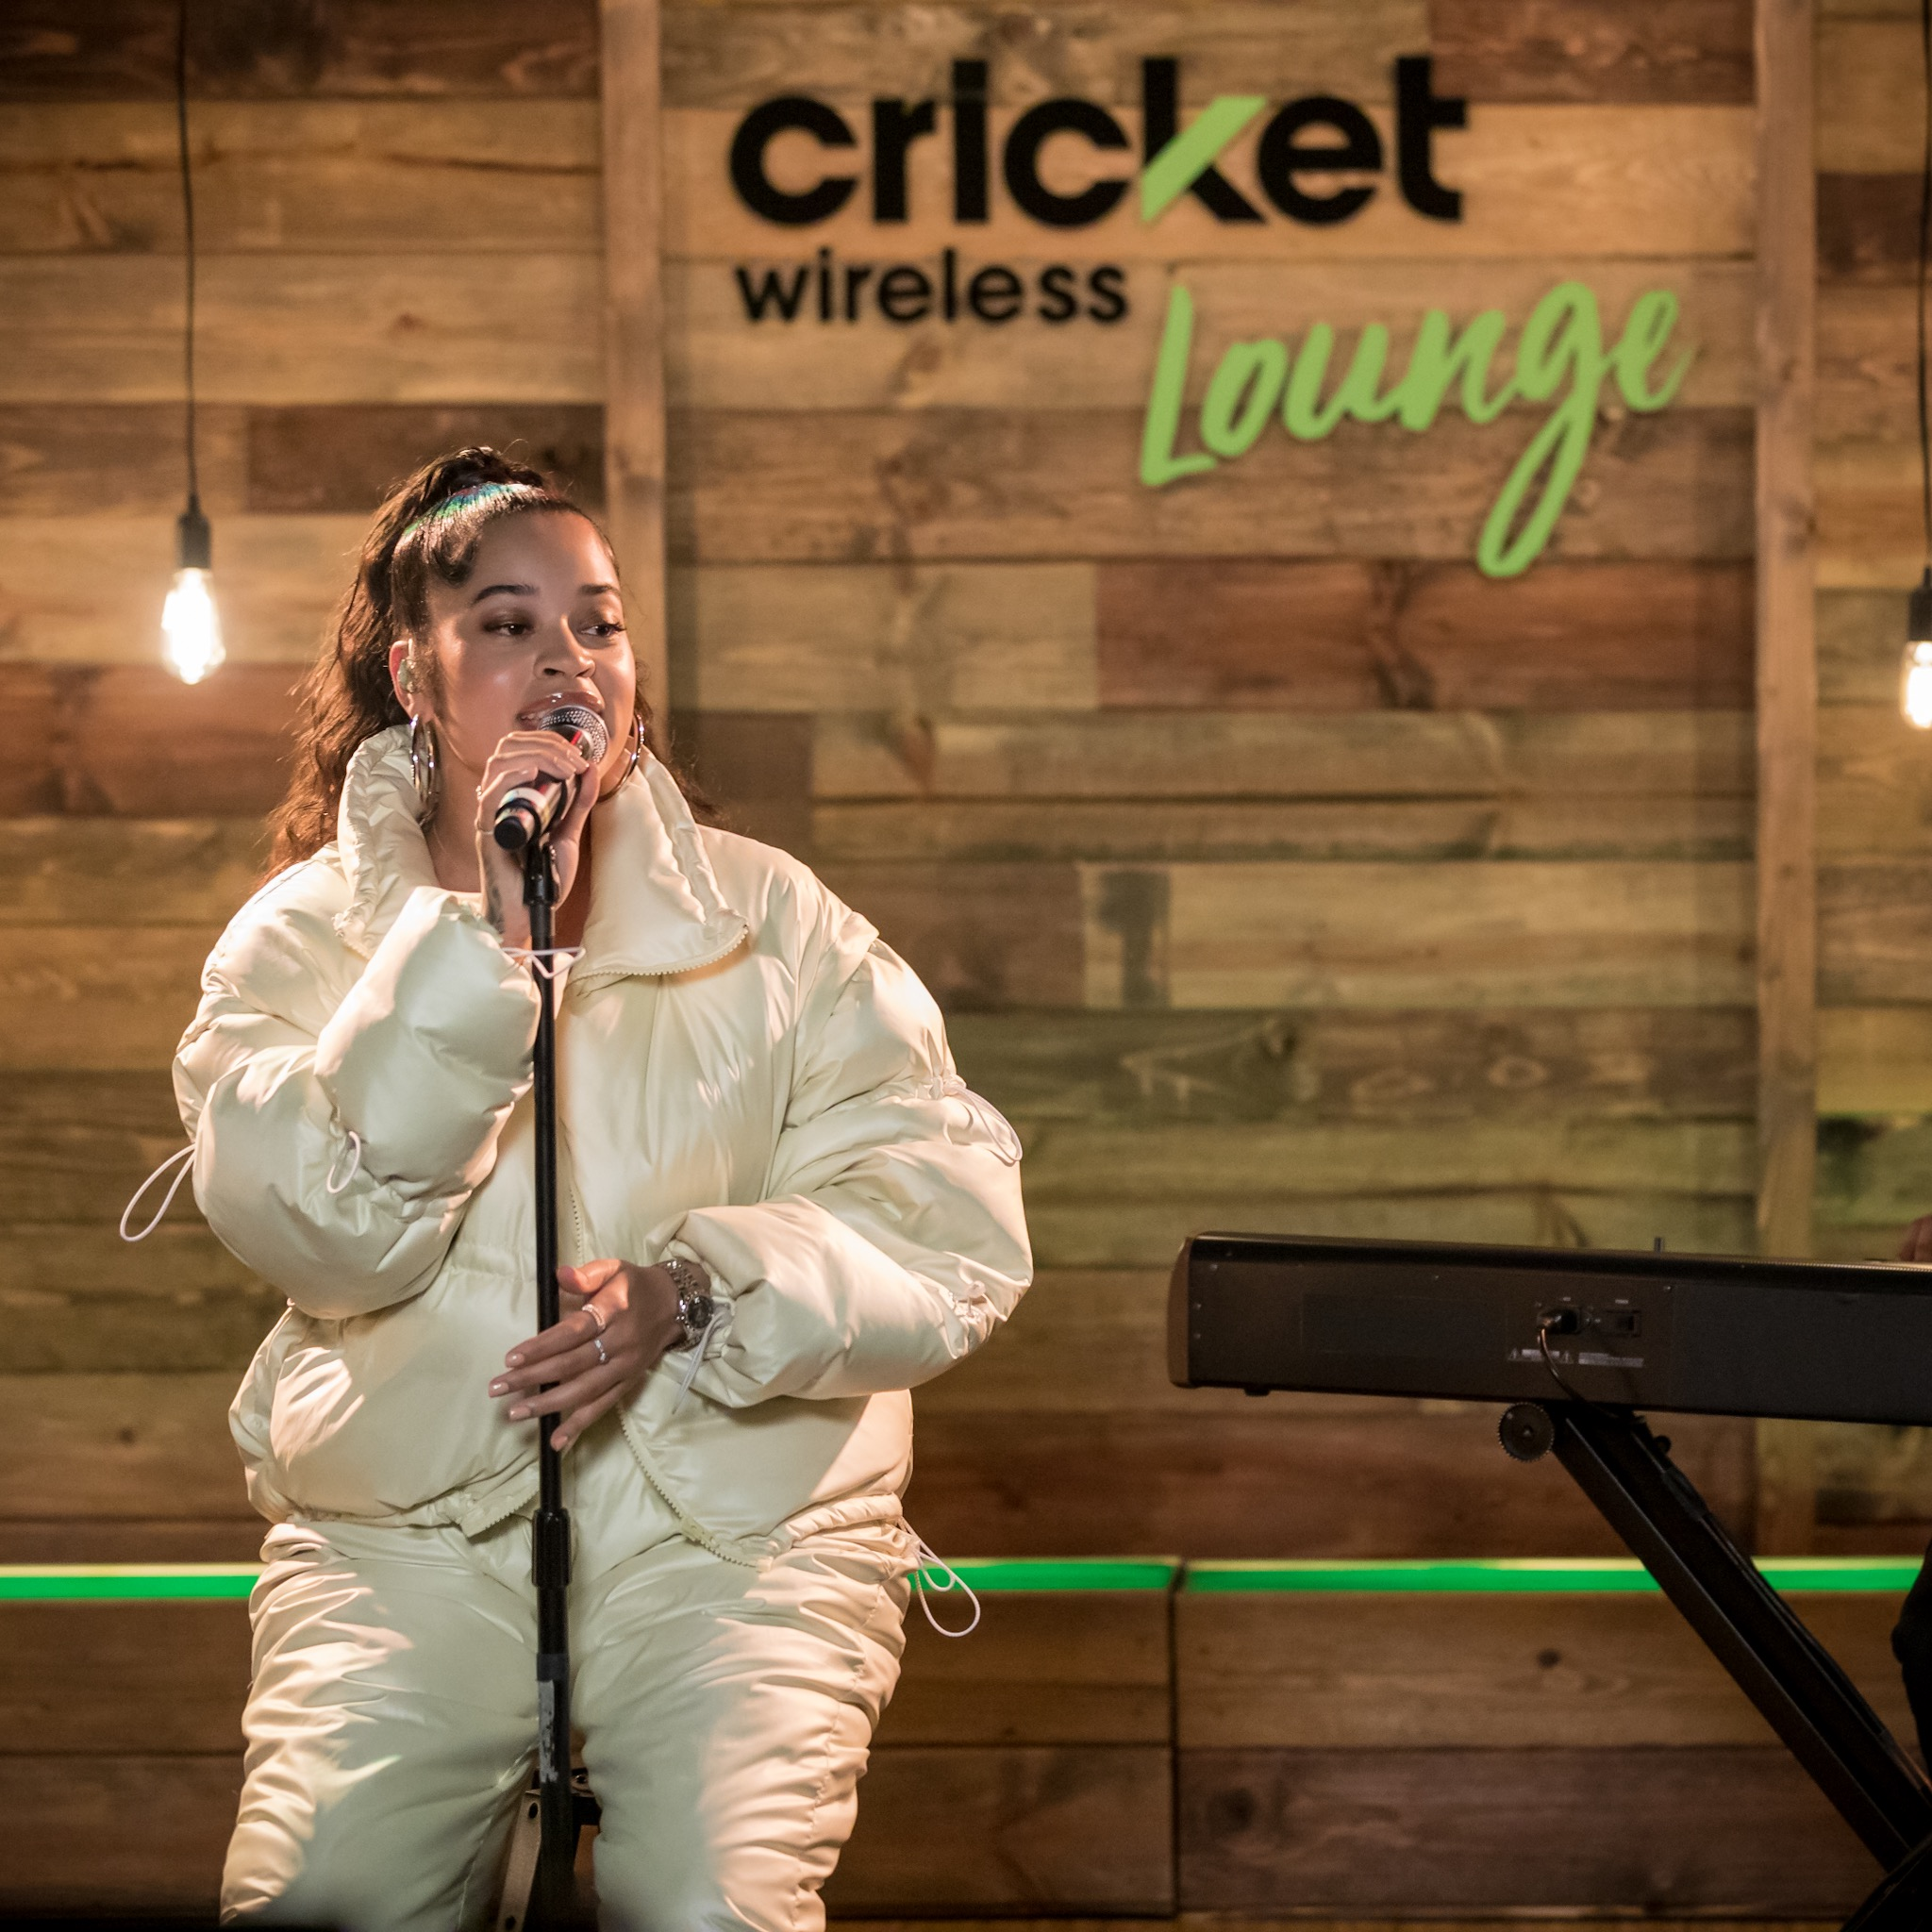 Live from the Cricket Wireless Lounge interview and live concert with Ella Mai